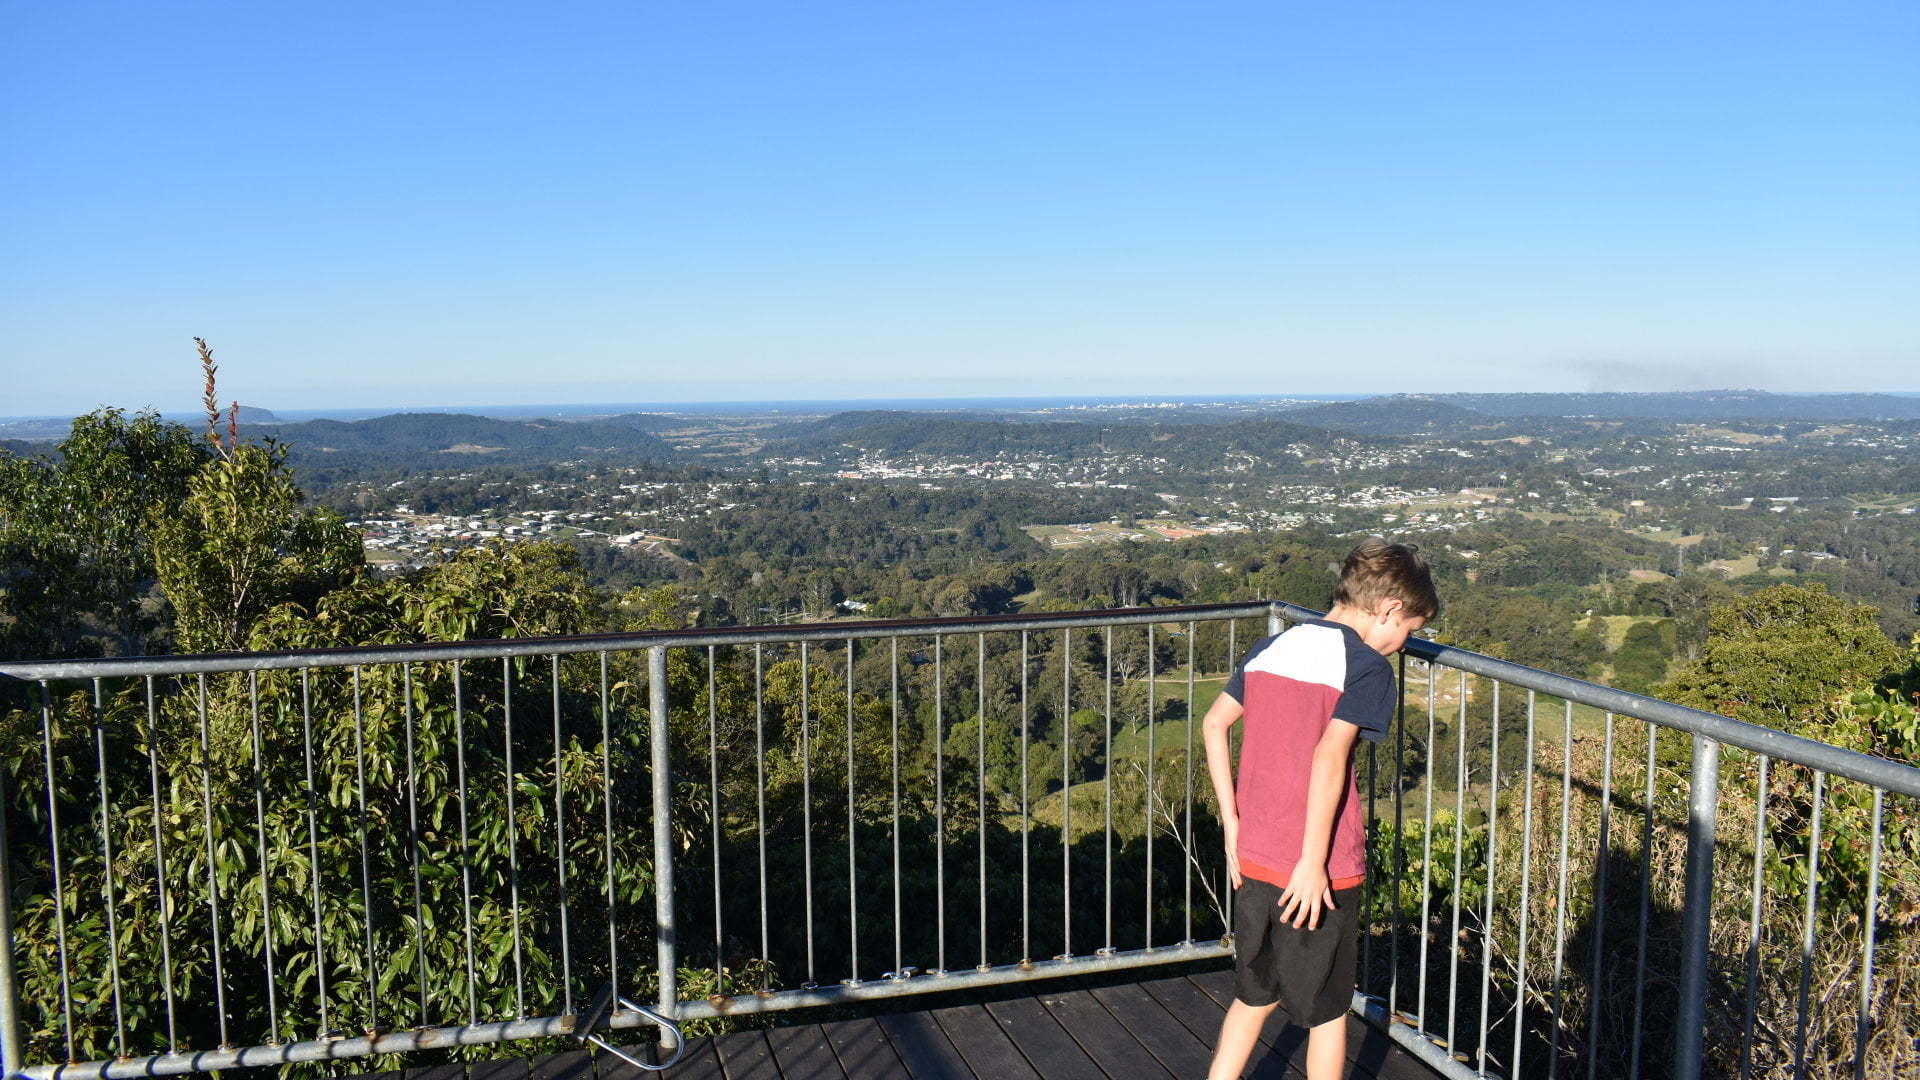 View from a lookout platform, at Dulong Lookout with views out to Sunshine Coast from behind Nambour